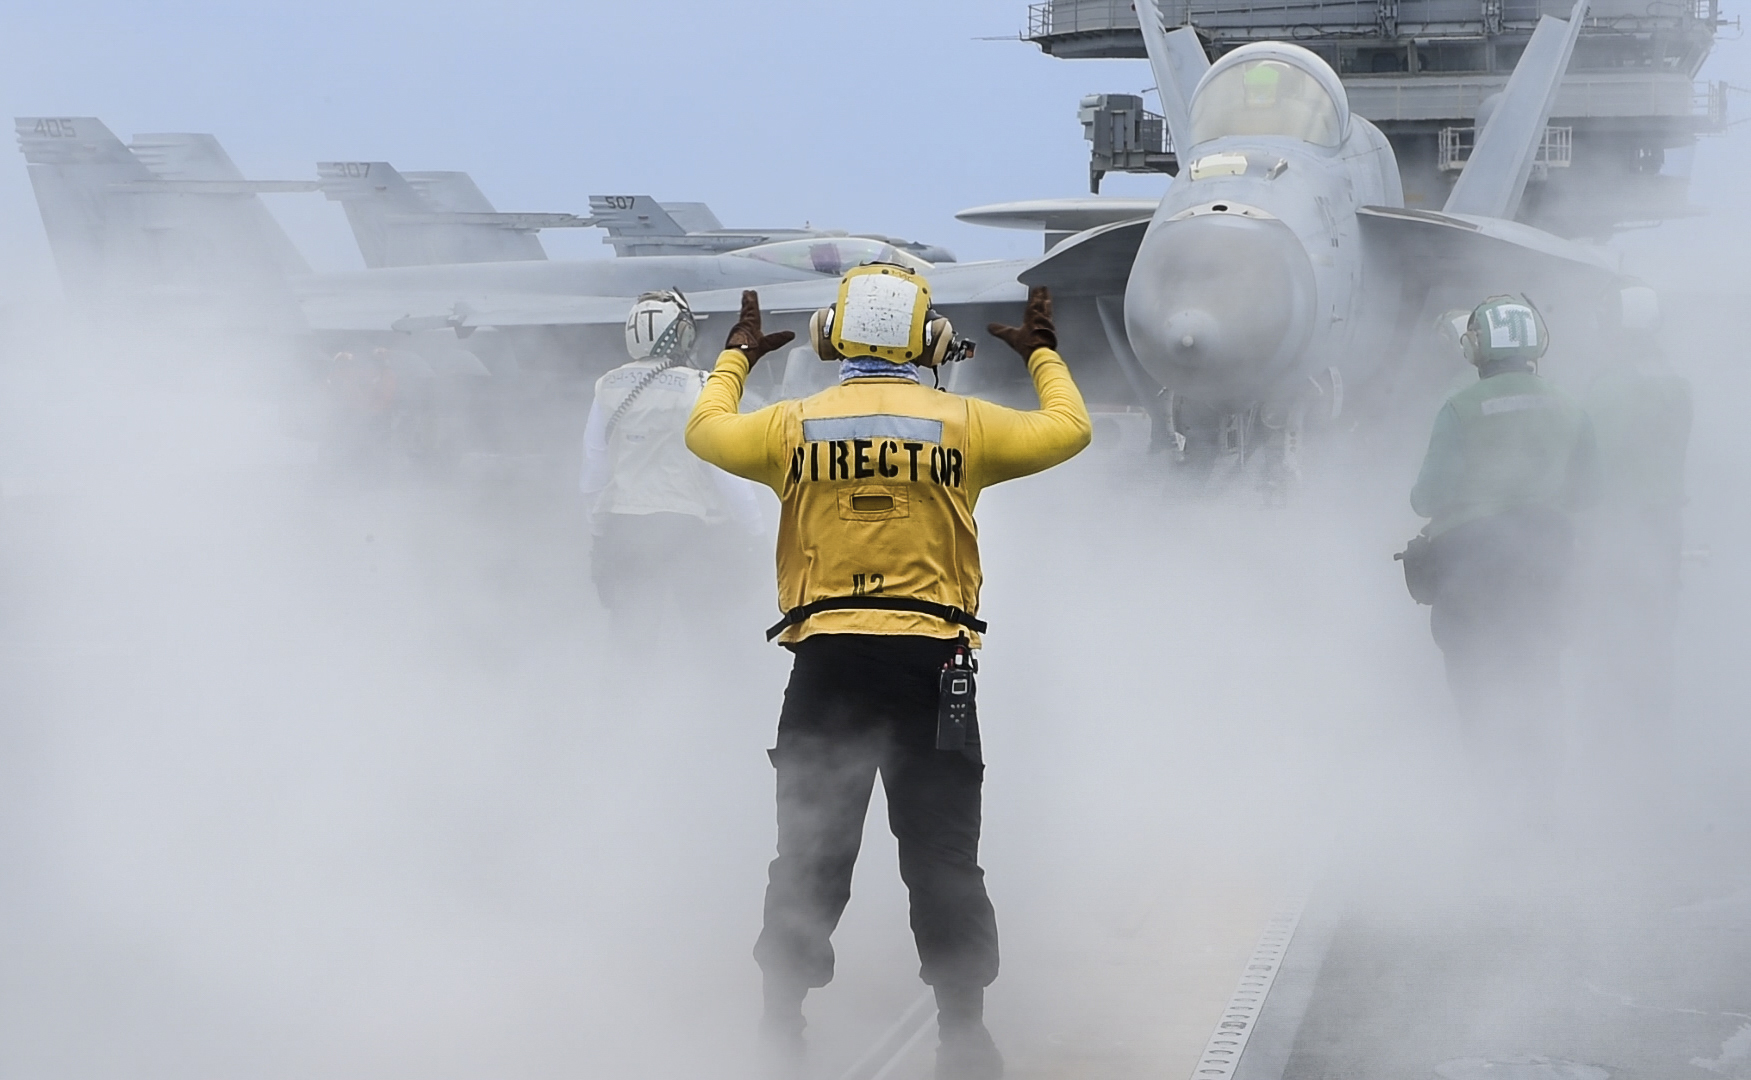 Aviation Boatswain's Mate (Handling) Airman Thomas McLaughlin directs an F/A-18E Super Hornet on May 26, 2020, on the flight deck of the aircraft carrier USS Ronald Reagan (CVN 76) in the Philippine Sea. (MC3 Erica Bechard/Navy)